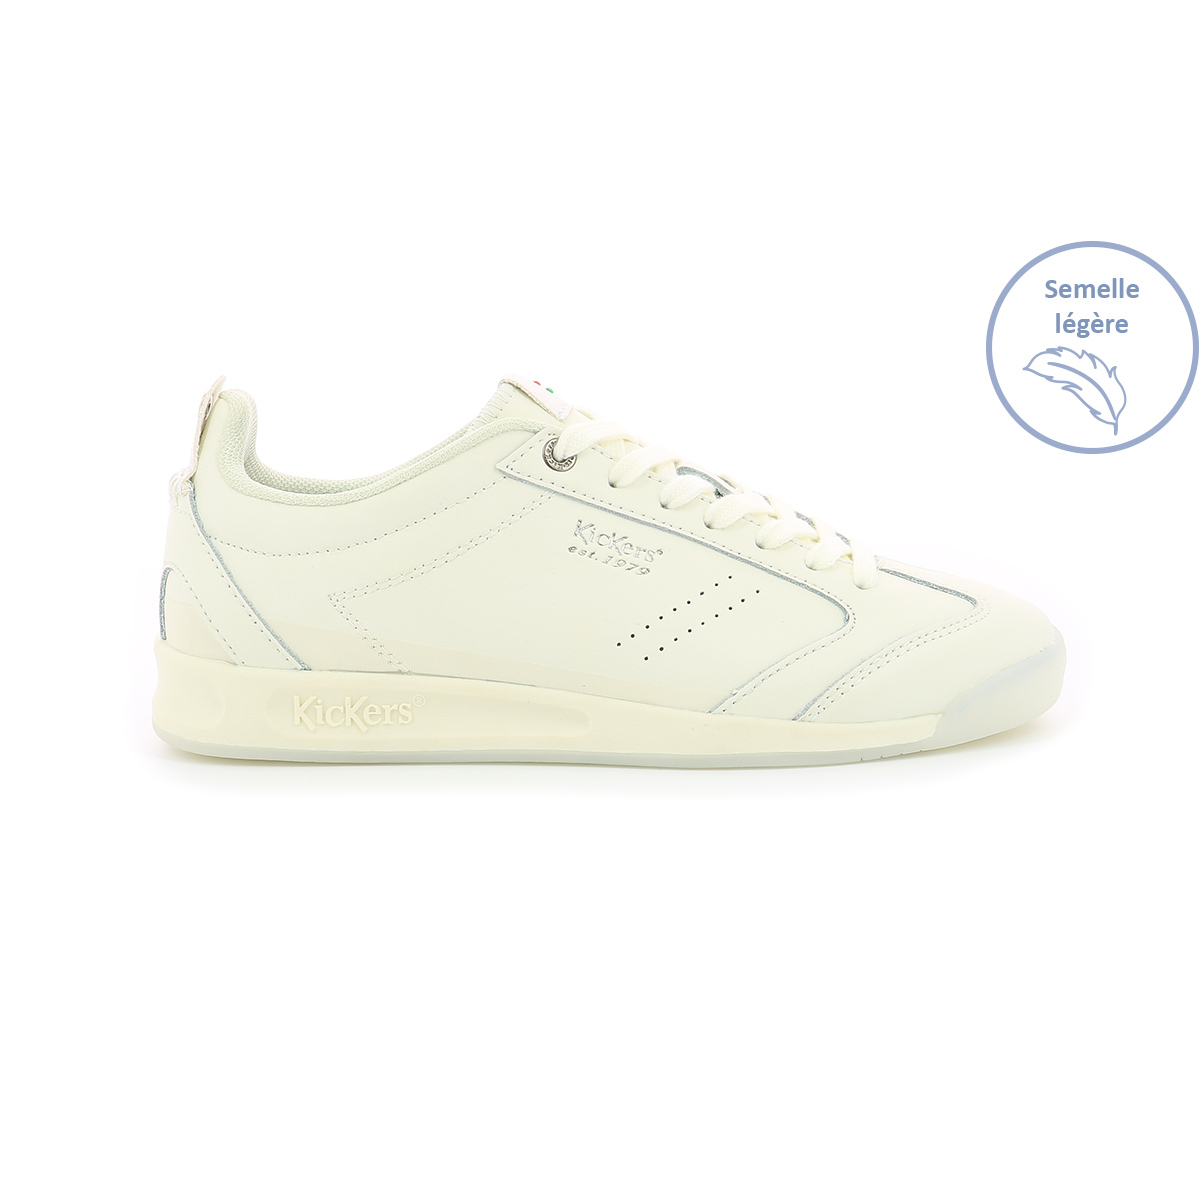 Sneakers basses pour femme Kick 18 Wn blanc - Chaussures